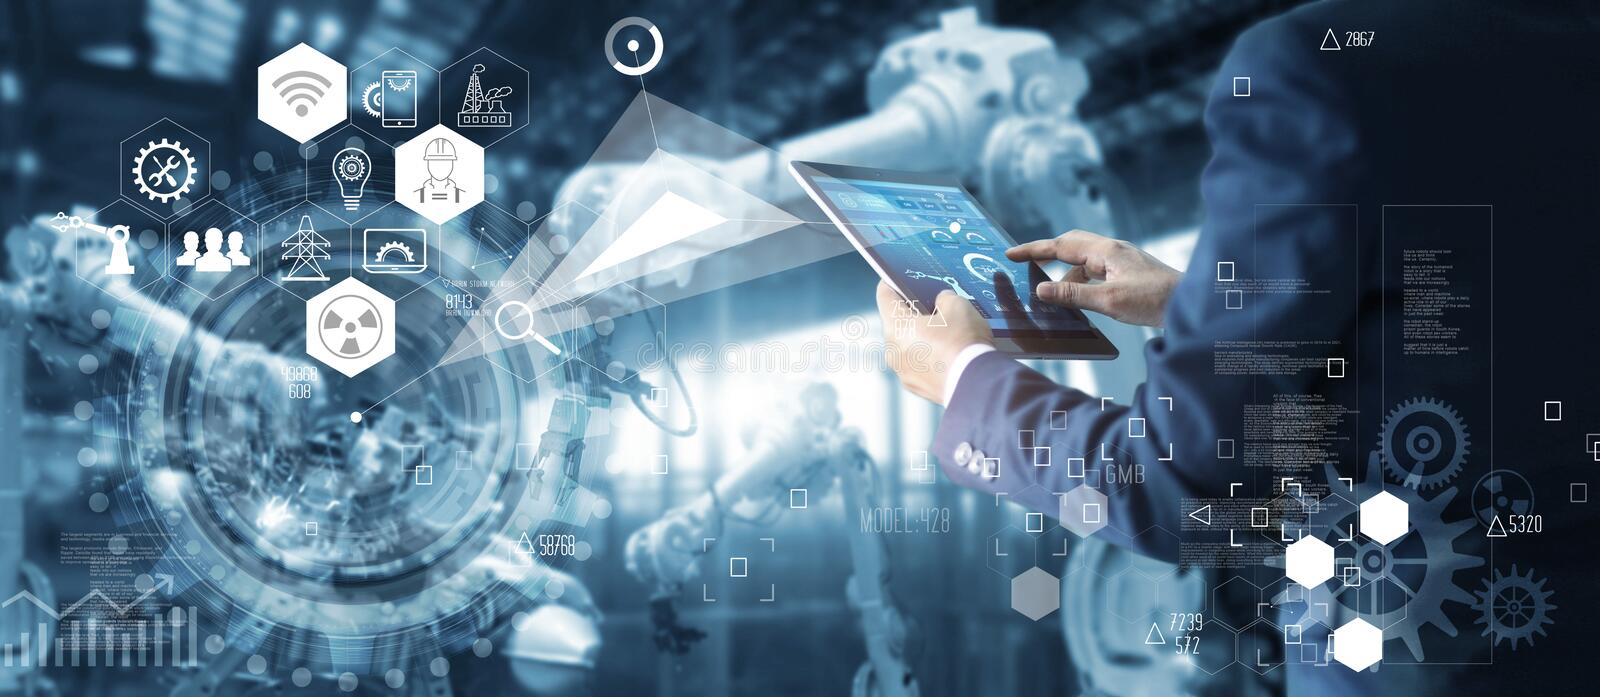 Engineer manager controlling robotics on motoring system stock image